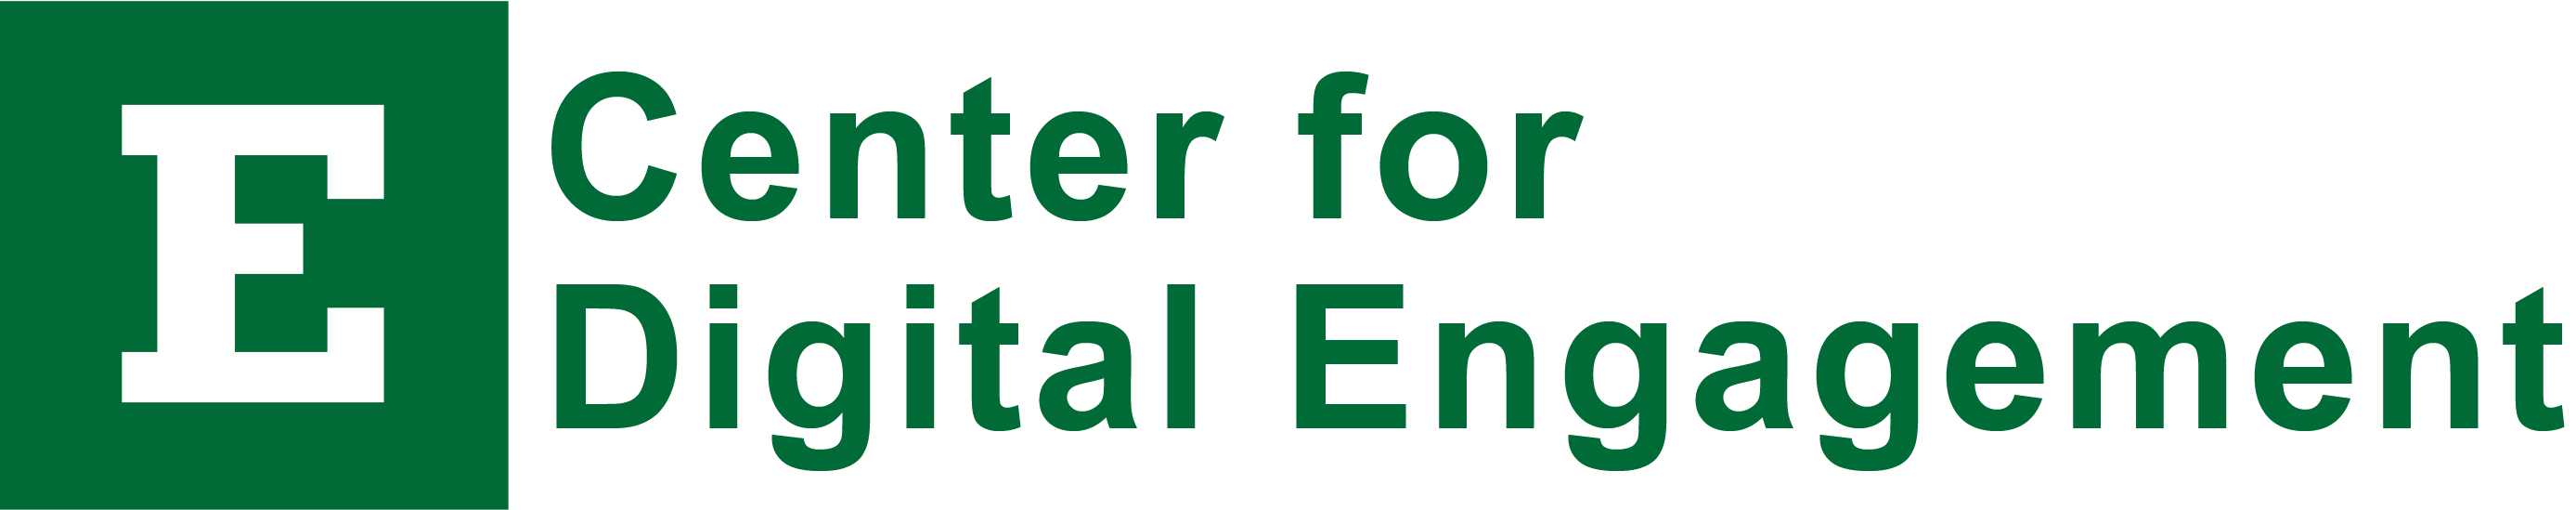 Eastern Michigan University Center For Digital Engagement Logo